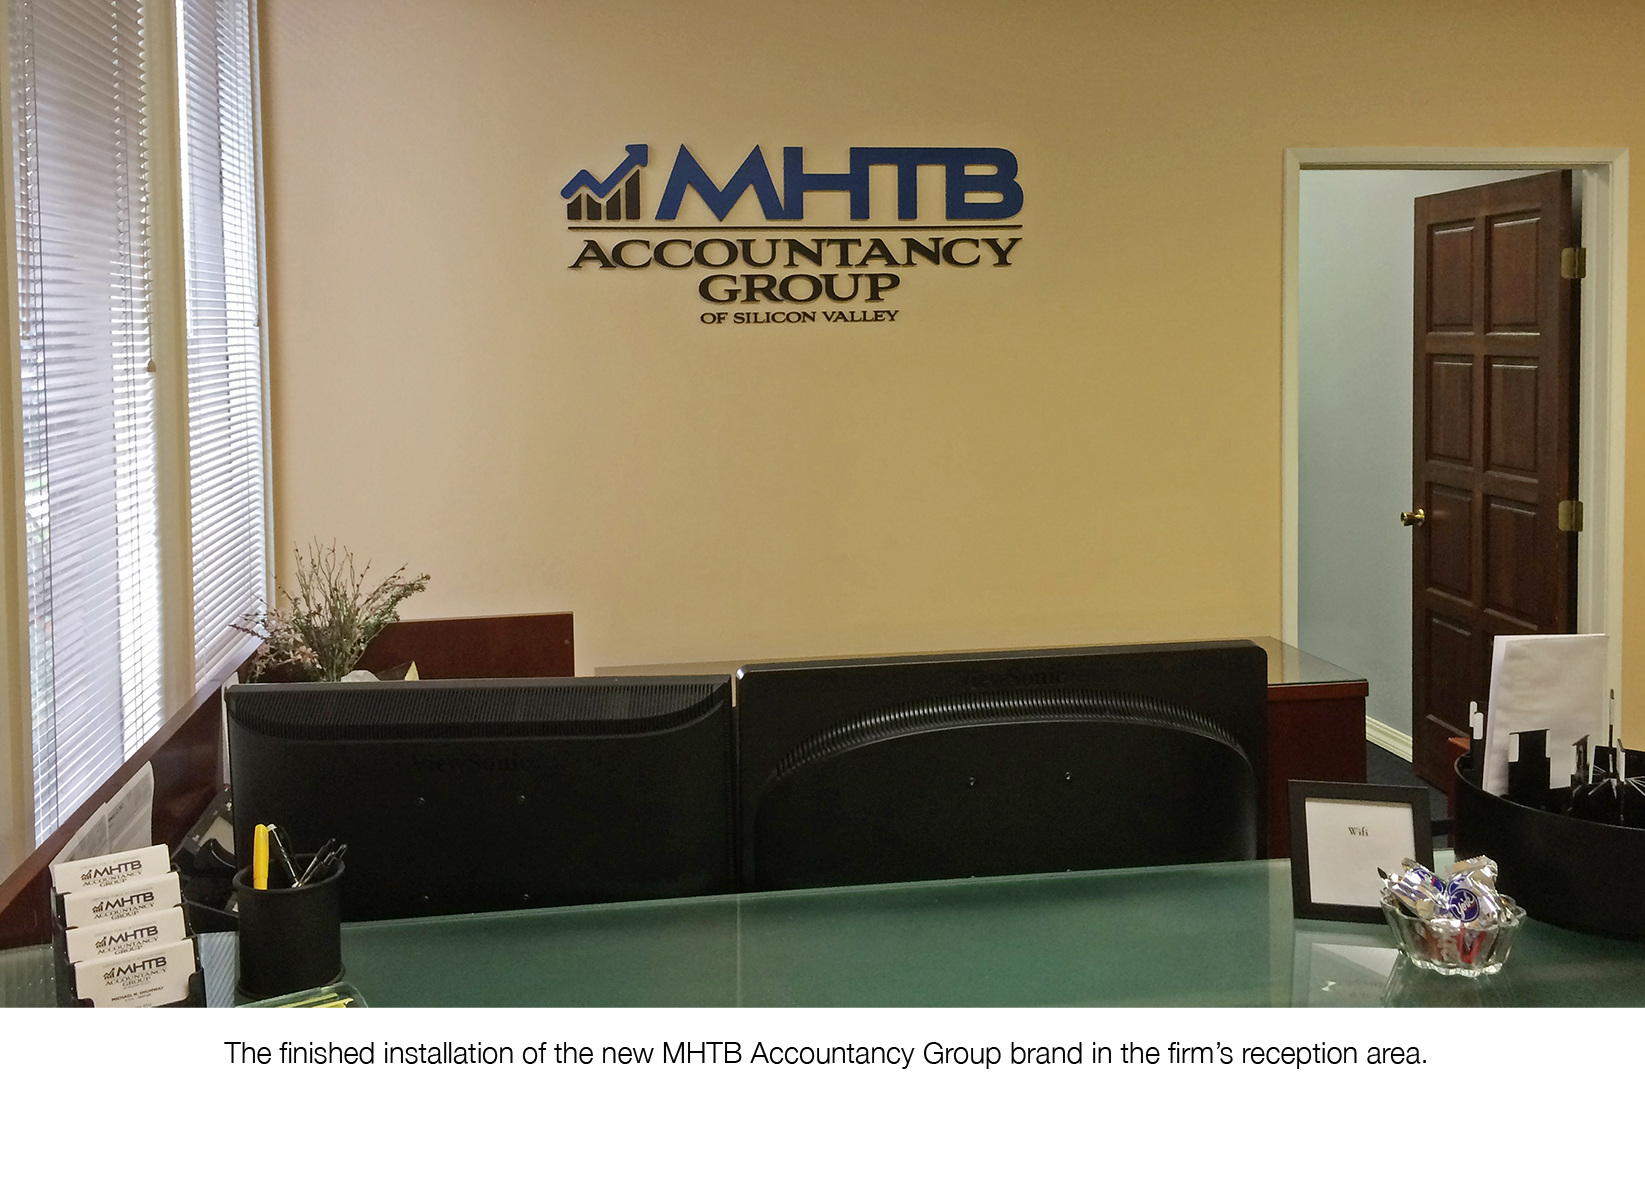 MHTB Accountancy Group's New Reception Wall Sign